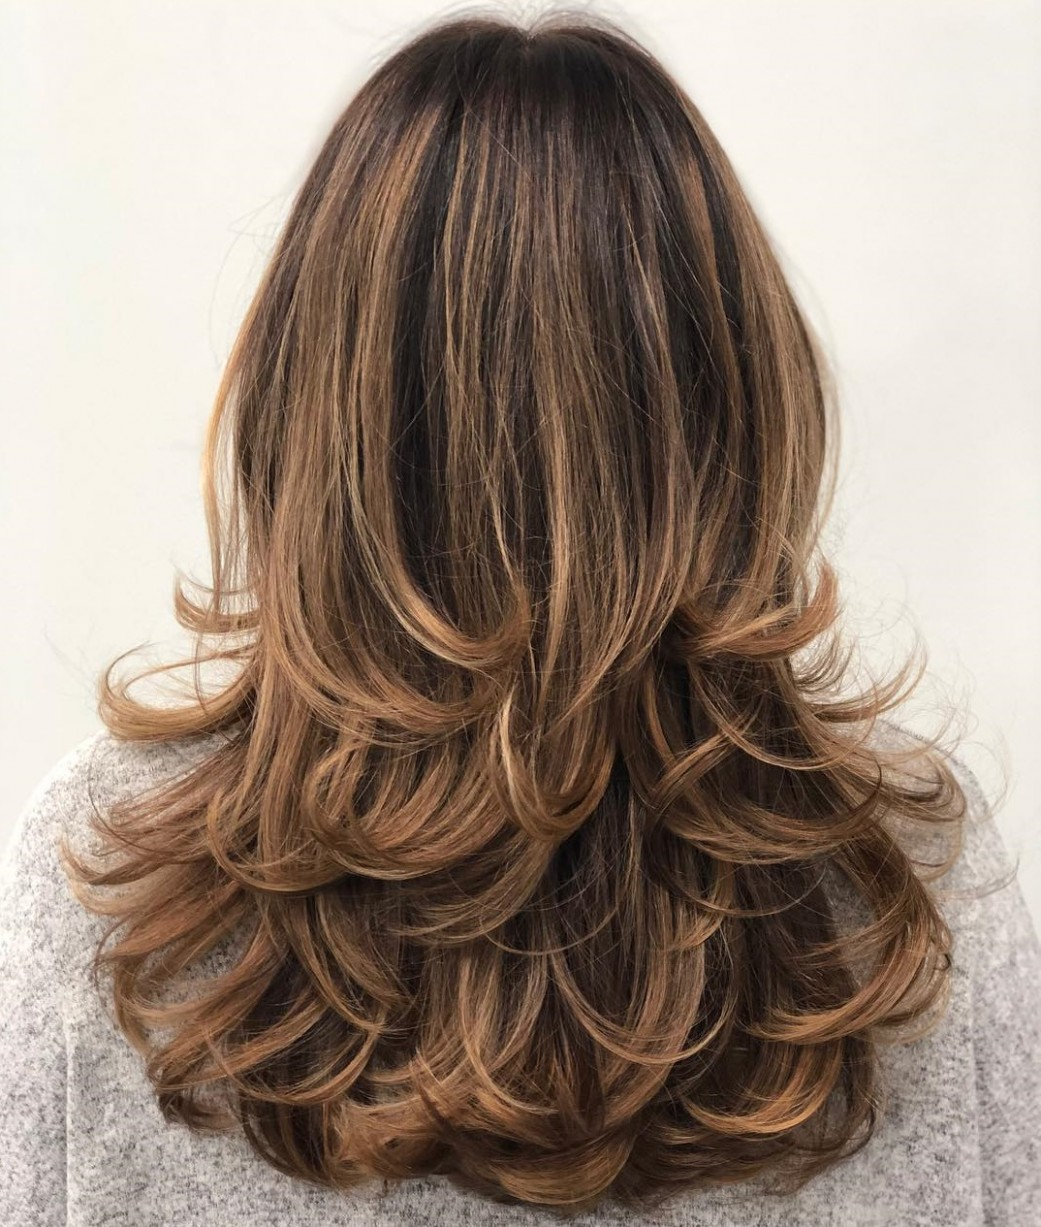 10 NEW Long Hairstyles With Layers For 10 Hair Adviser Different Haircuts For Long Hair